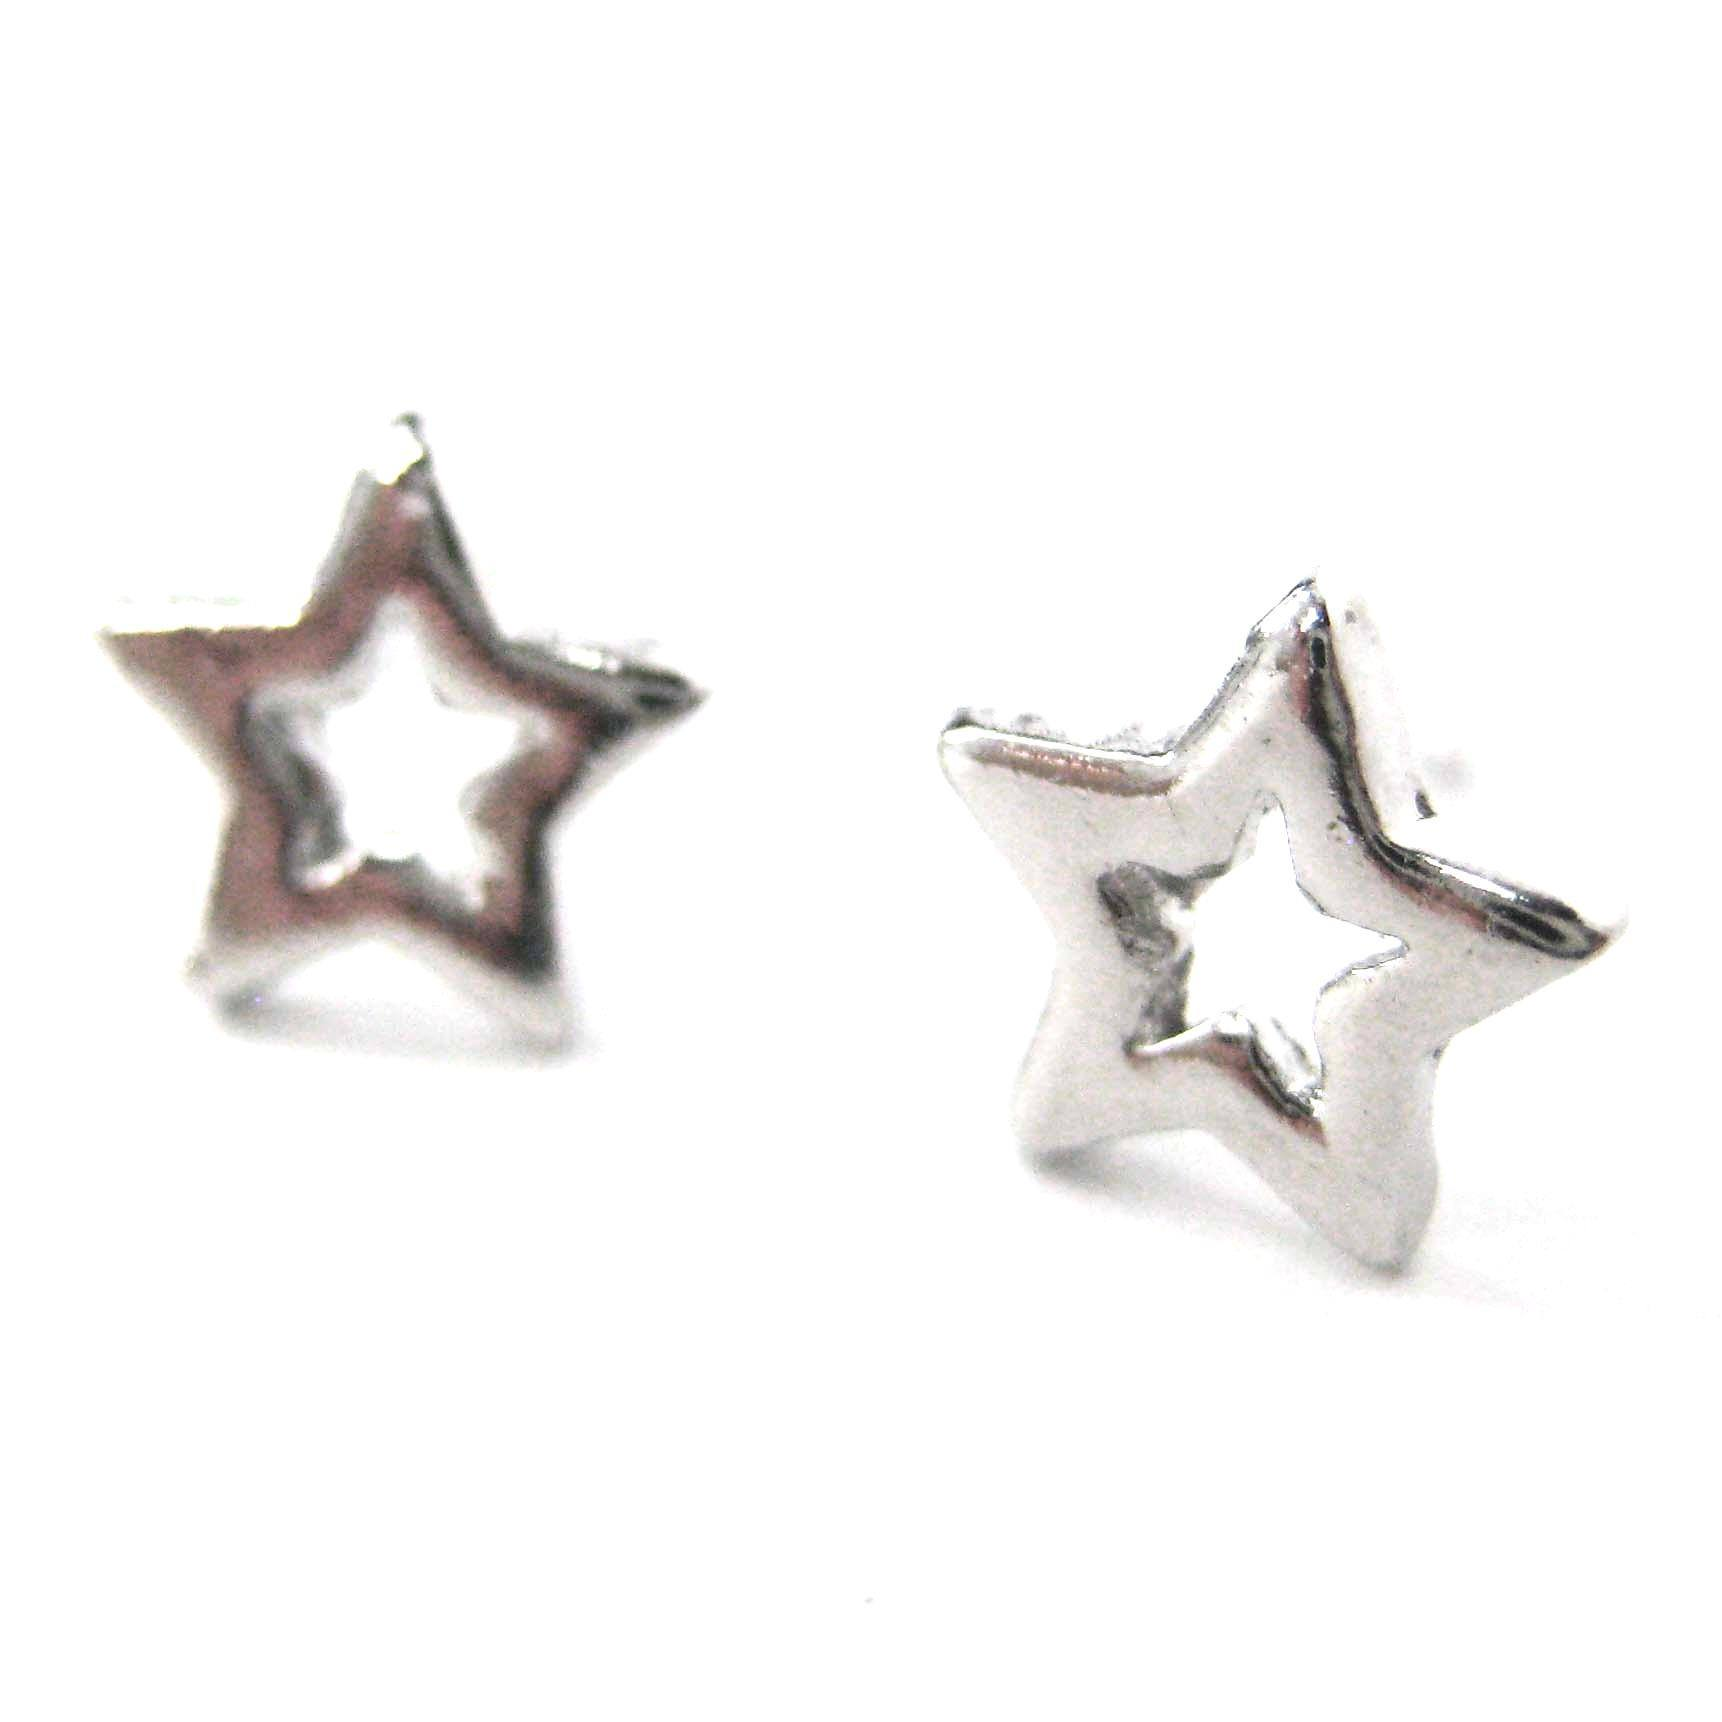 small-star-shaped-night-sky-stud-earrings-in-silver